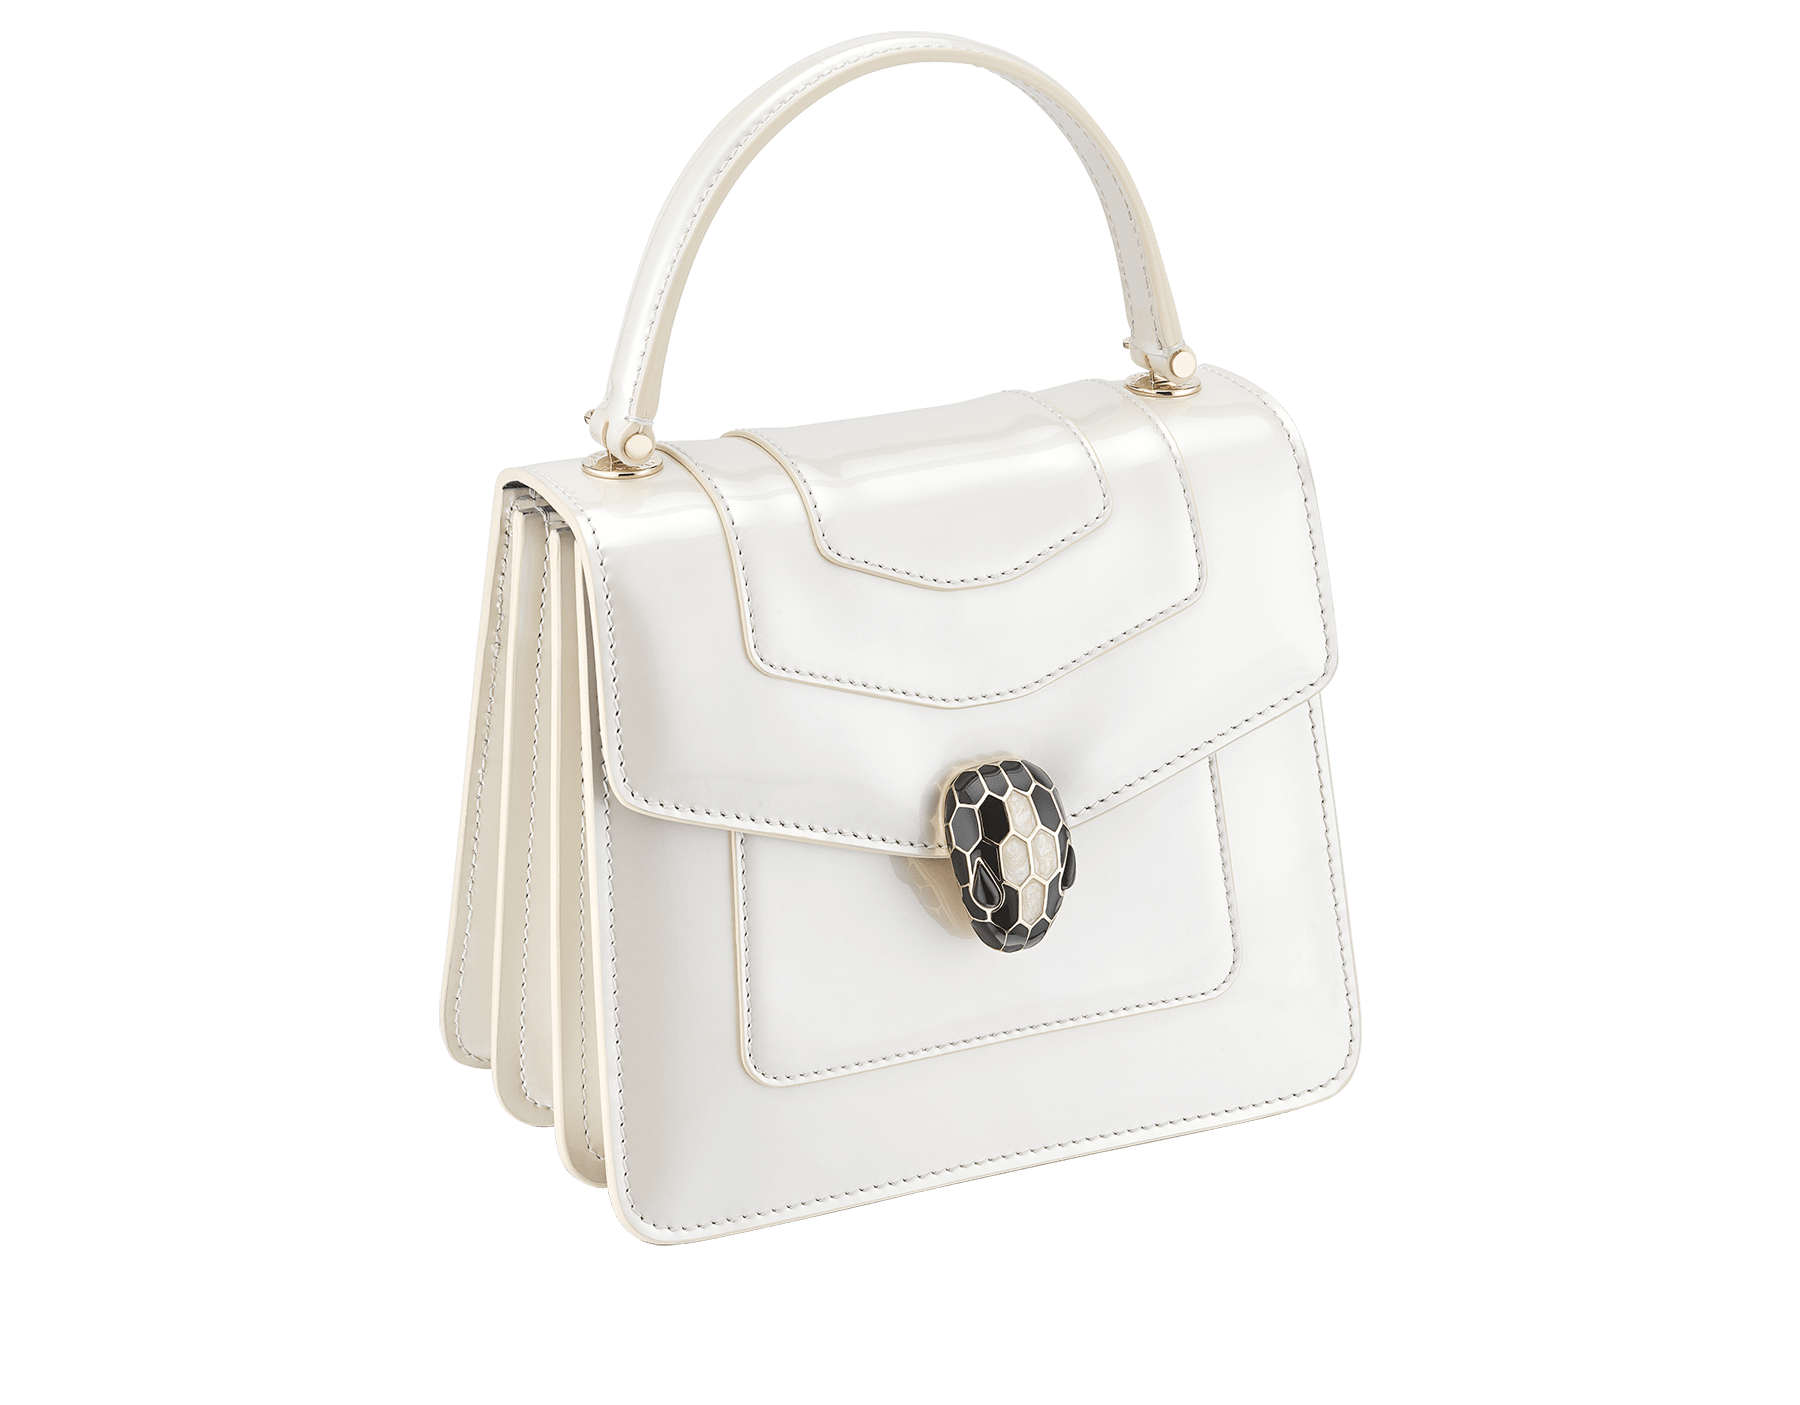 """Serpenti Forever "" crossbody bag in white agate leather with a varnished and pearled effect. Iconic snake head closure in light gold plated brass enriched with black and pearled white agate enamel, and black onyx eyes 289770 image 2"